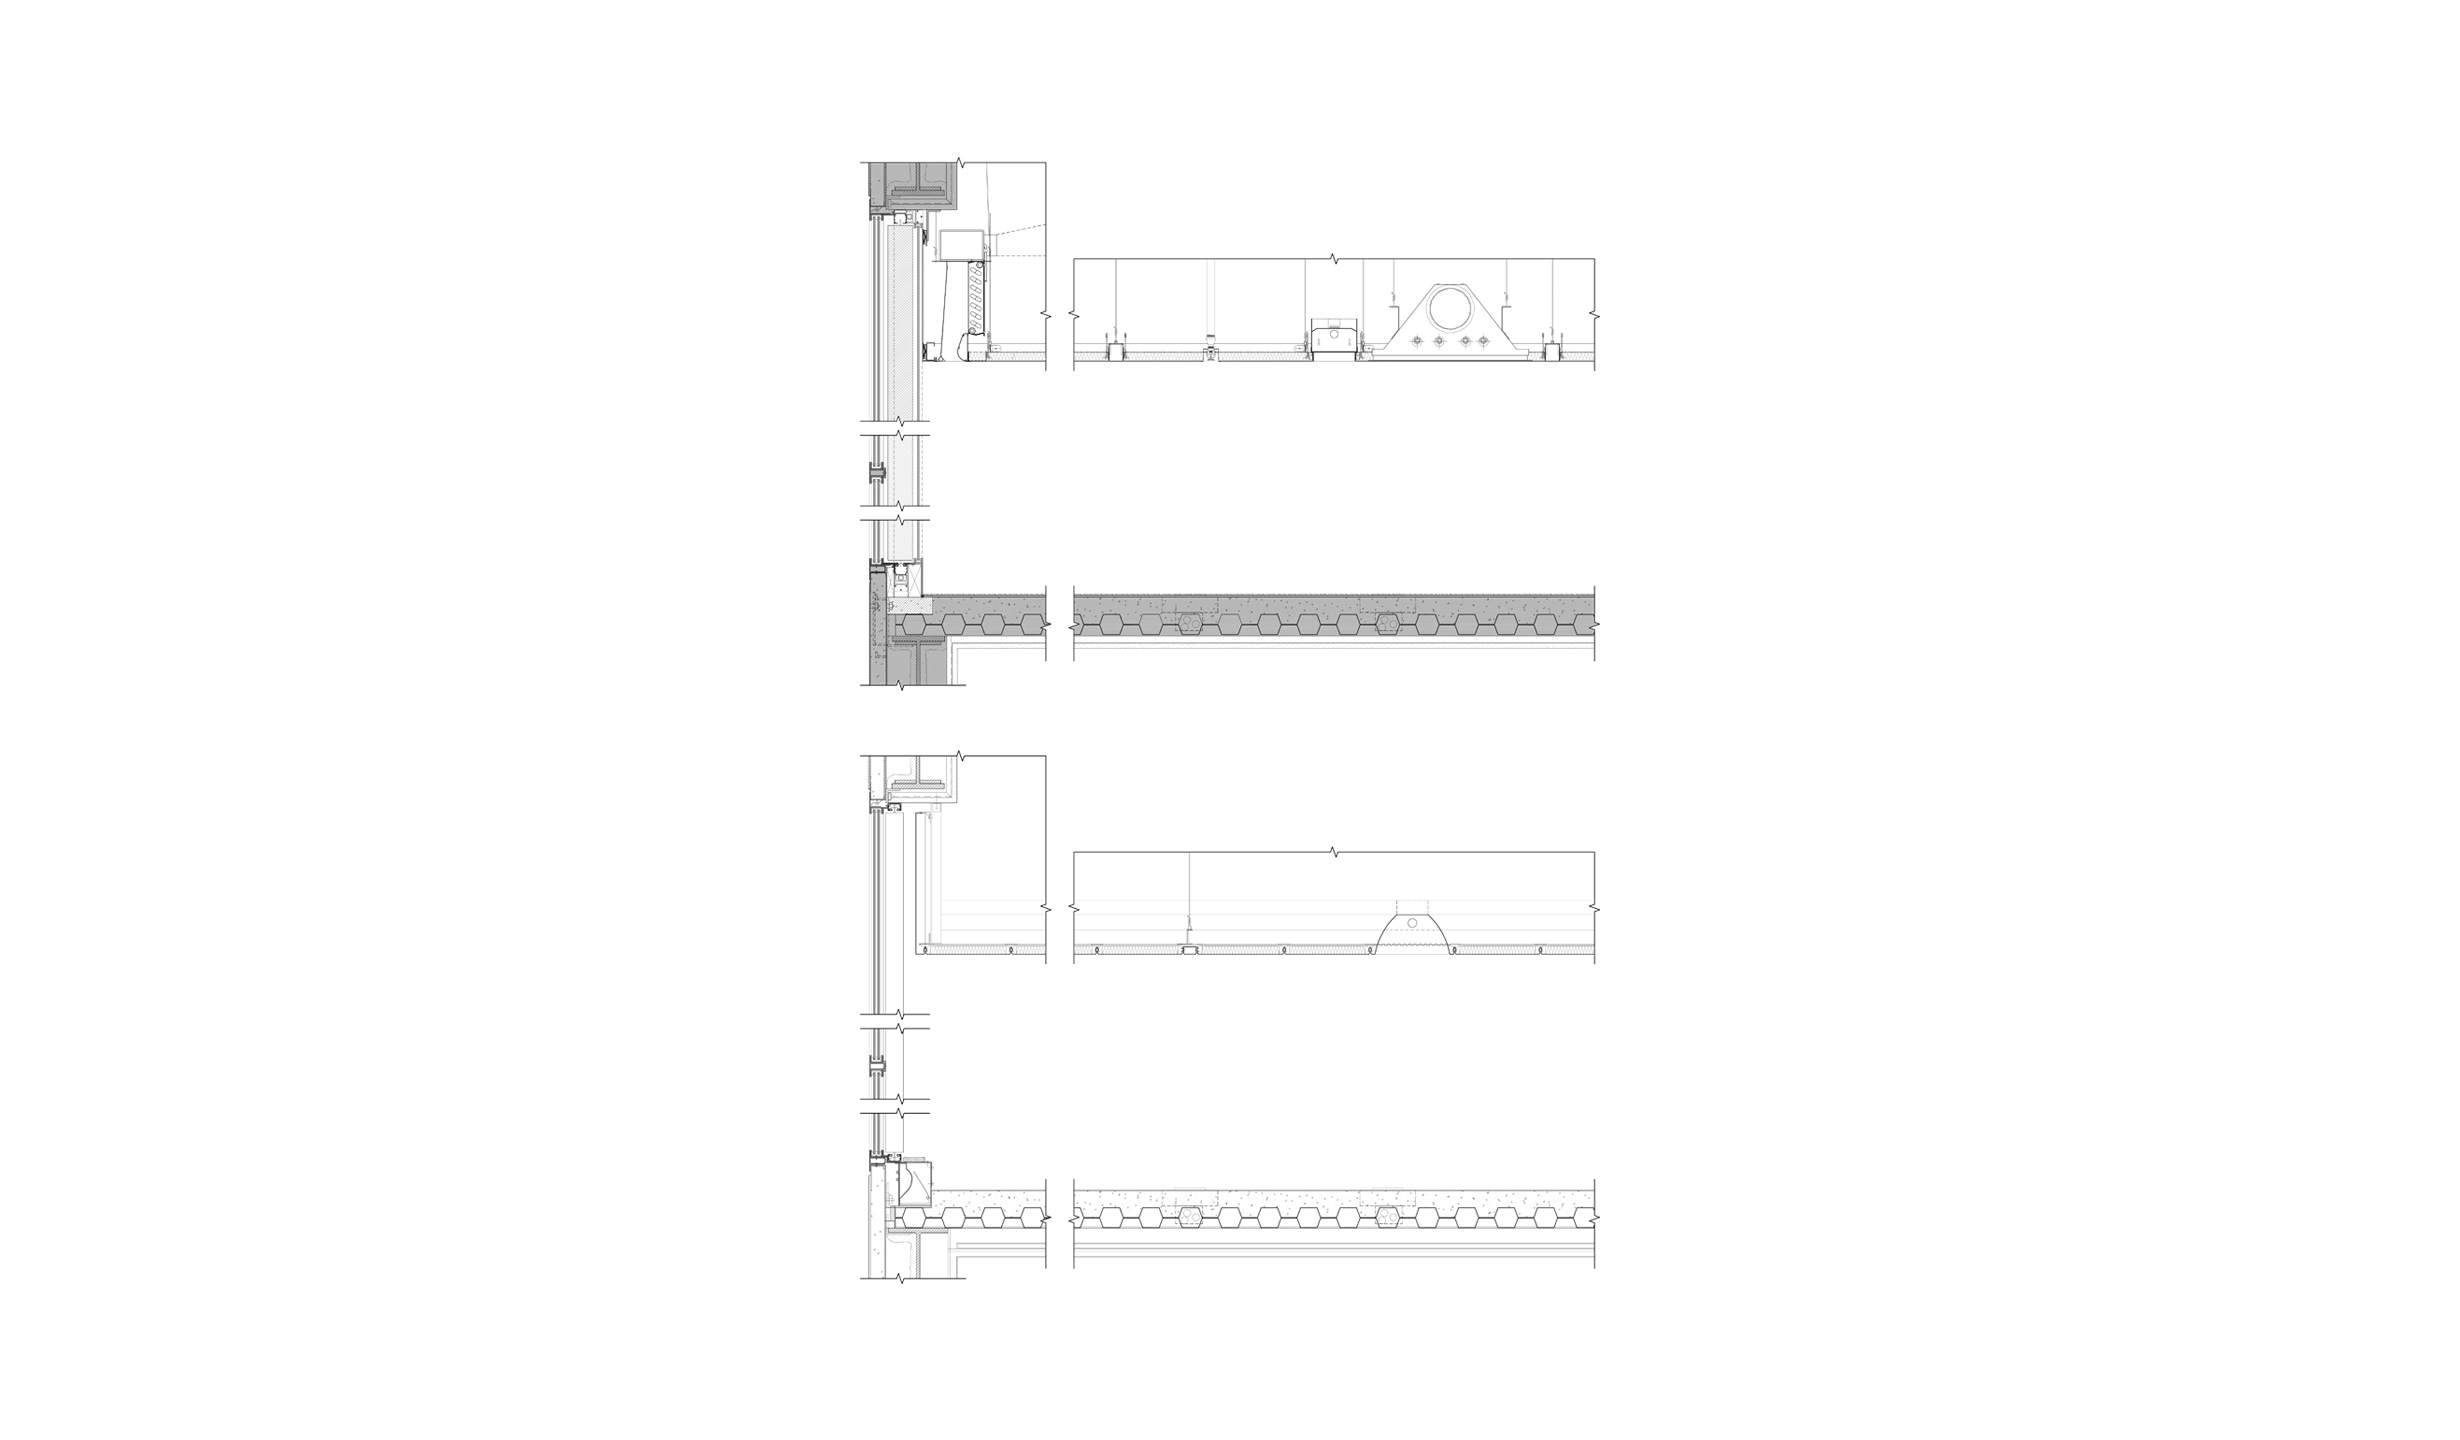 Wall Section, Building Systems Improvement